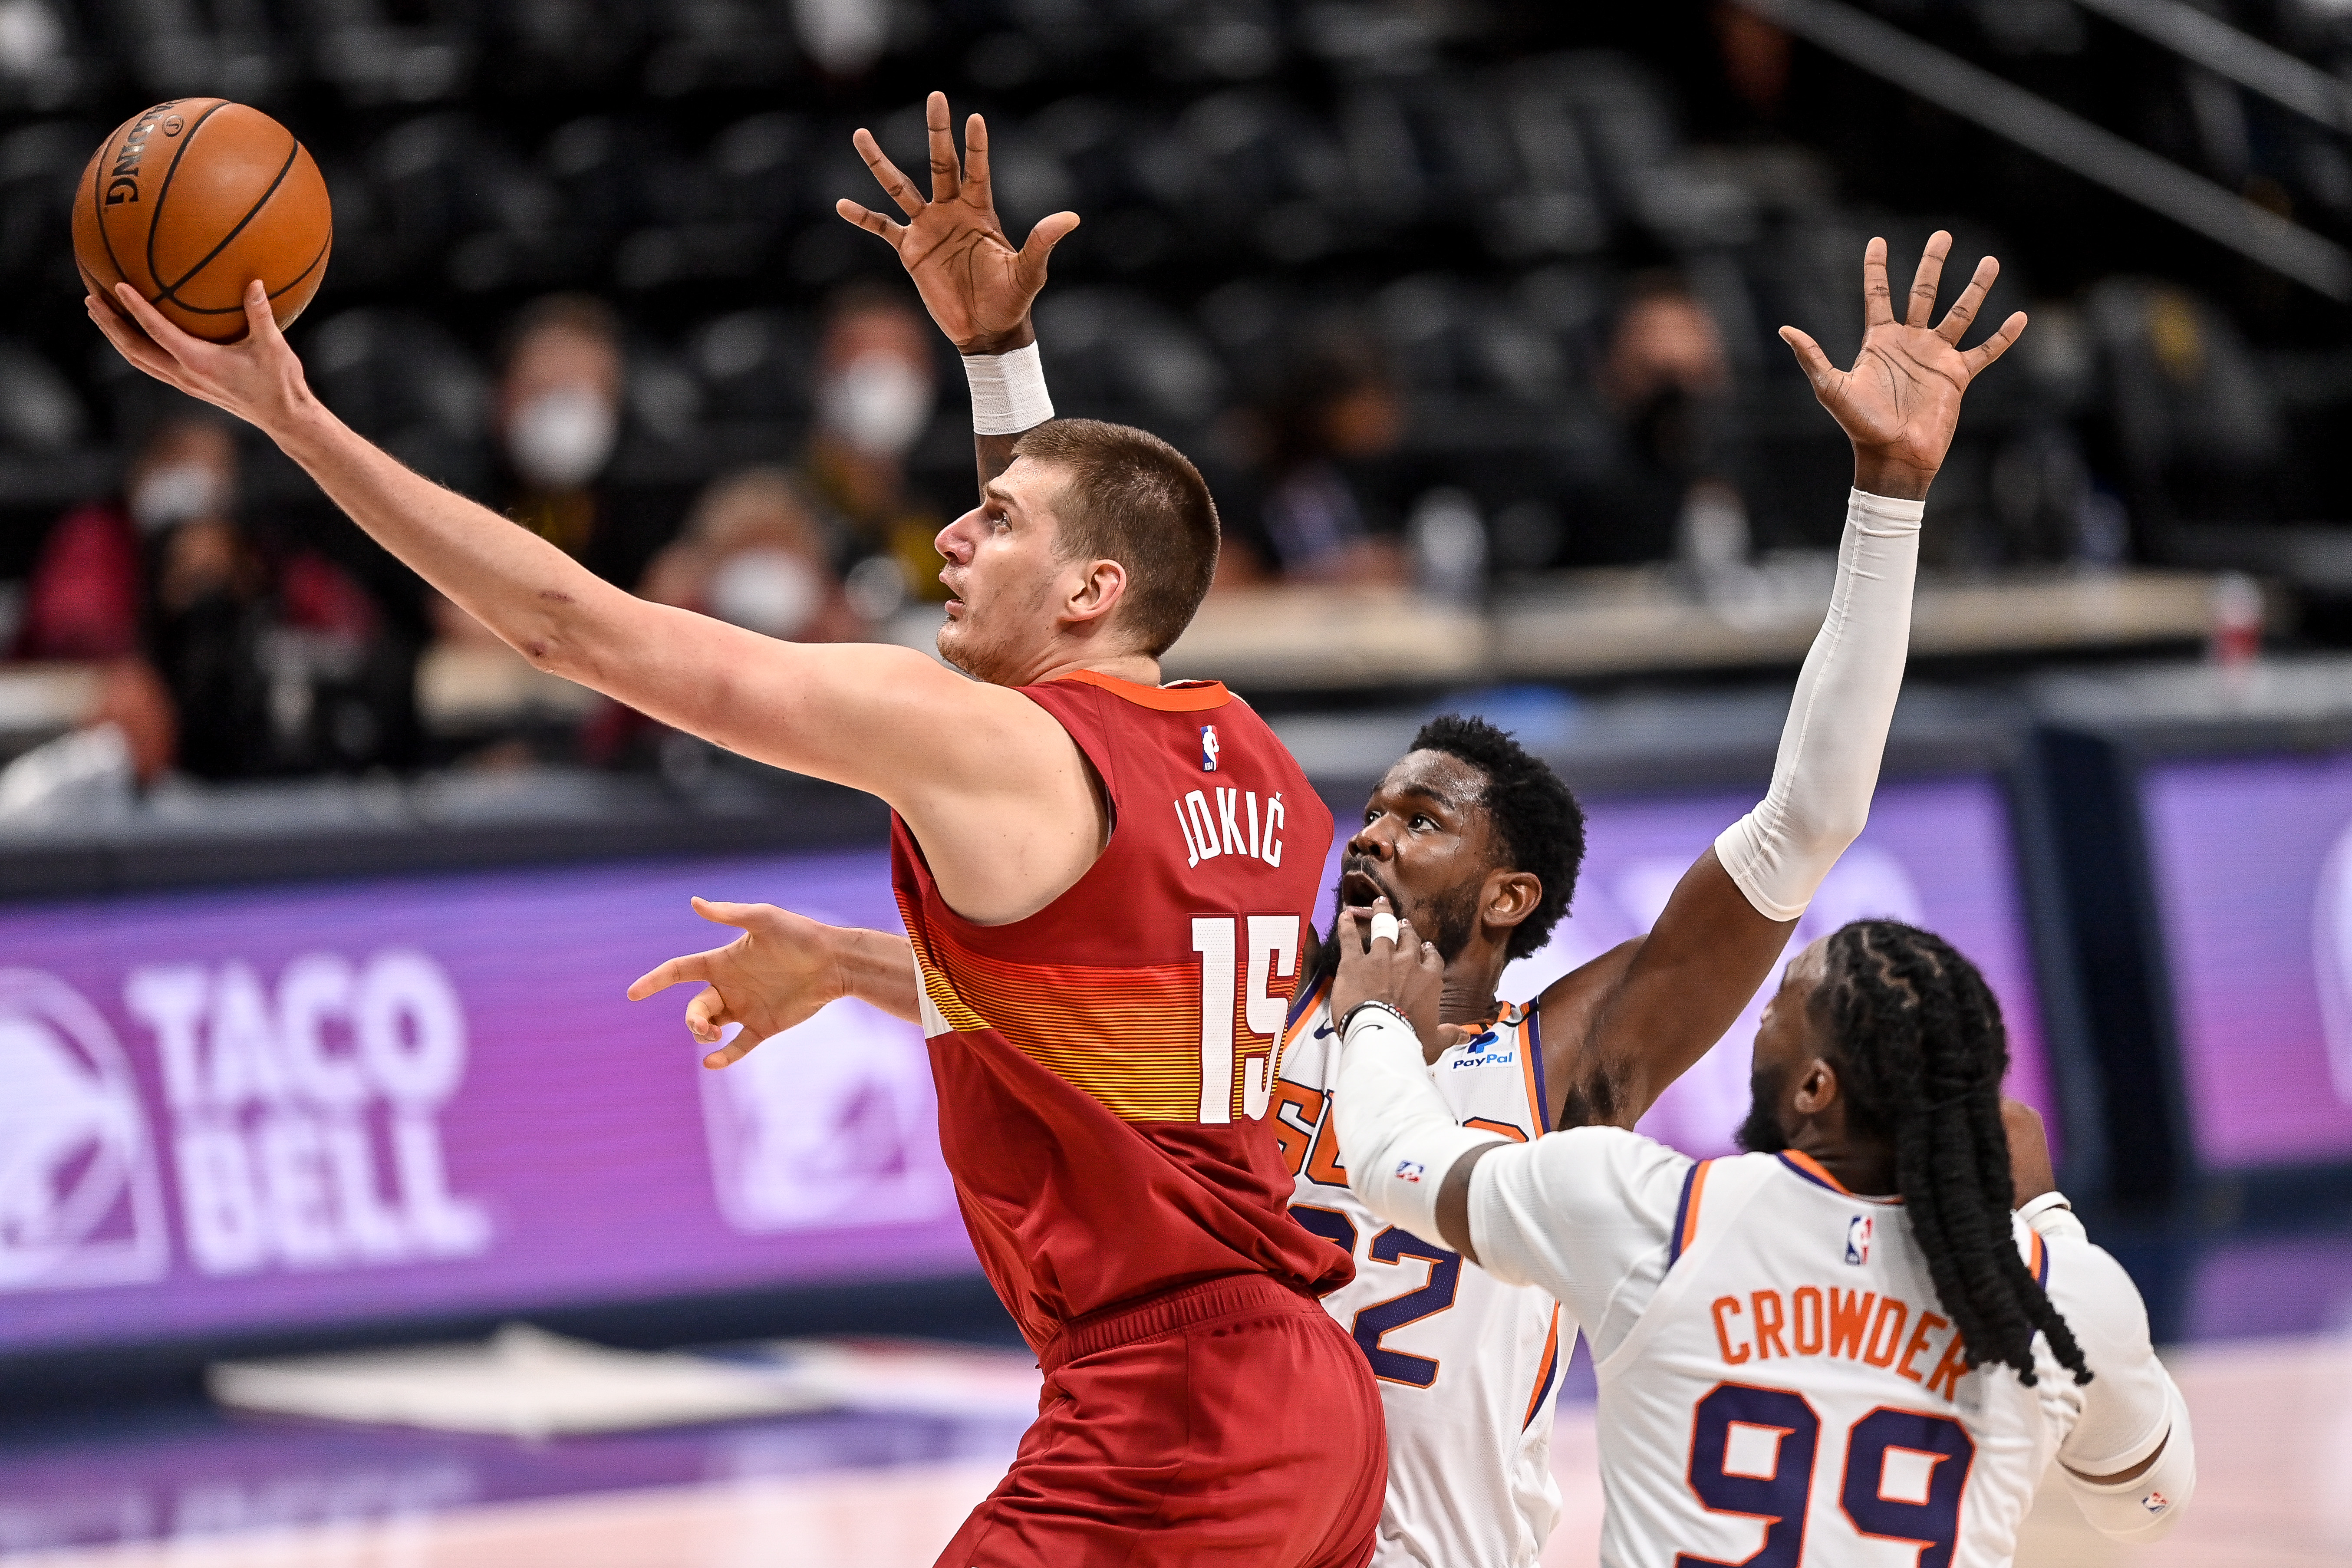 Nikola Jokic #15 of the Denver Nuggets scores on a layup past Jae Crowder #99 and Deandre Ayton #22 of the Phoenix Suns in Game Four of the Western Conference second-round playoff series at Ball Arena on June 13, 2021 in Denver, Colorado.